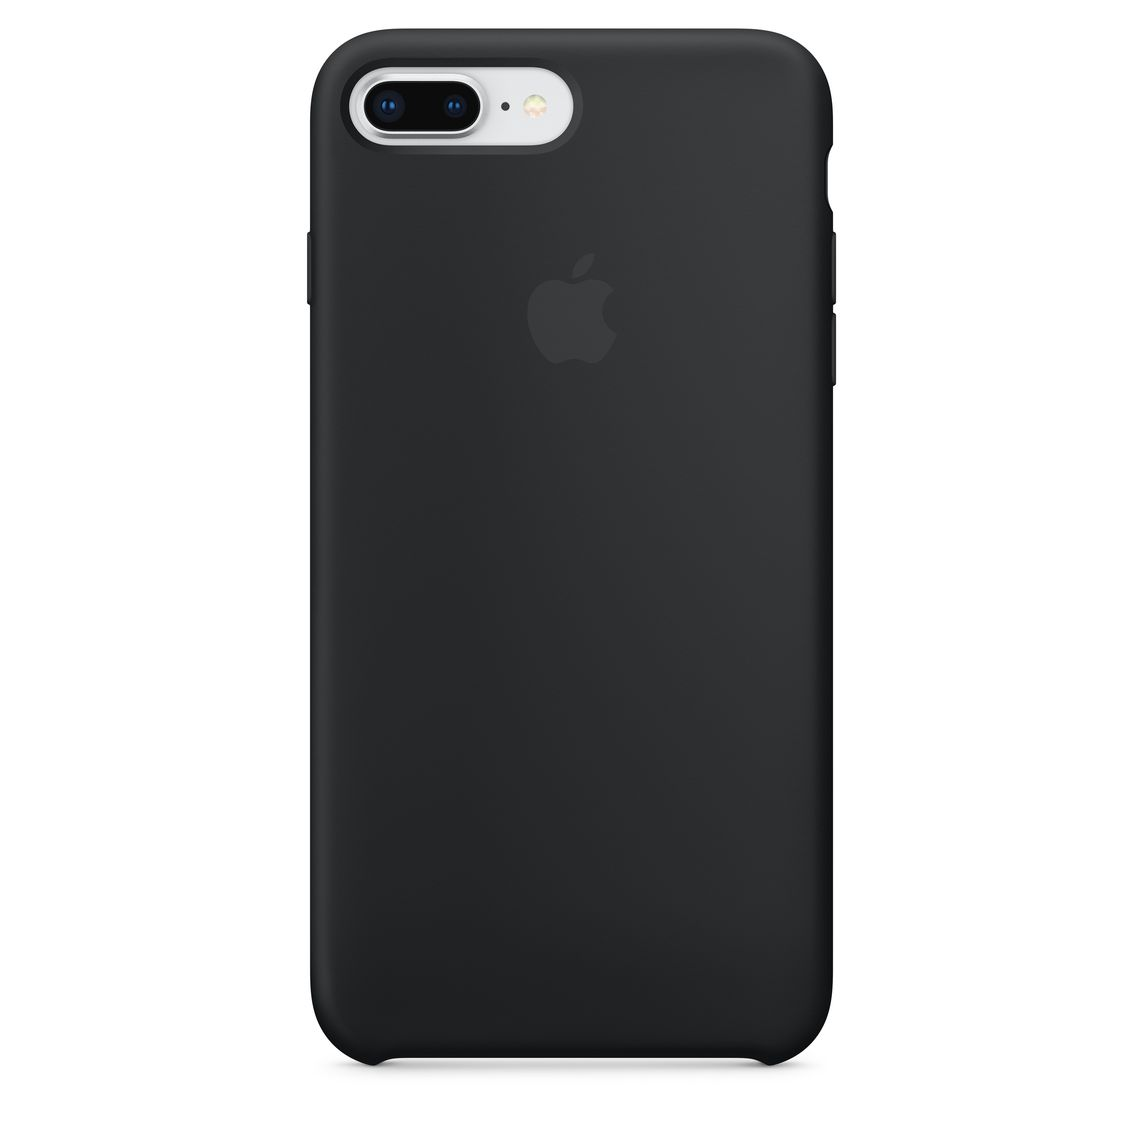 new product 1d440 e5bbc iPhone 8 Plus / 7 Plus Silicone Case - Black